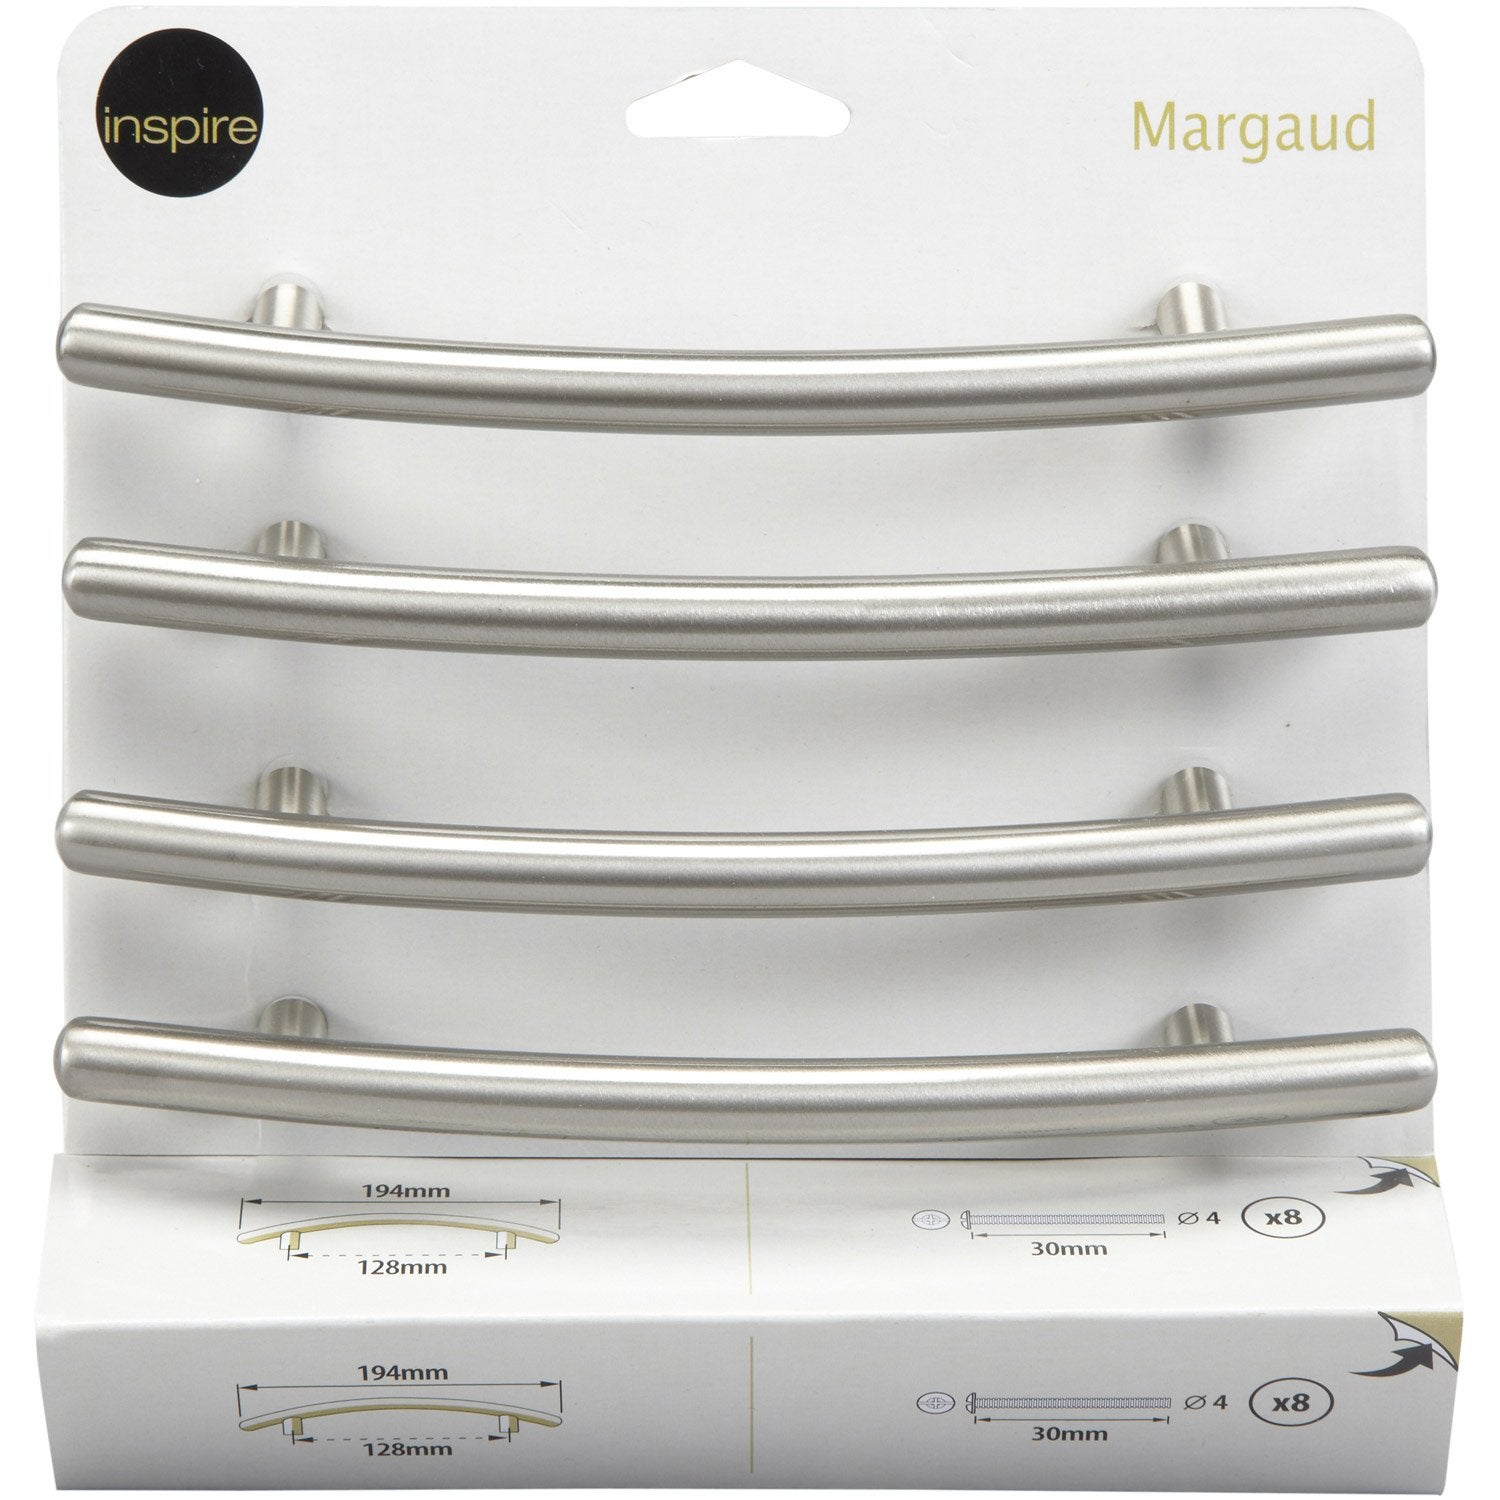 Lot de 4 poign es de meuble margaud acier bross entraxe for Portes de cuisine leroy merlin